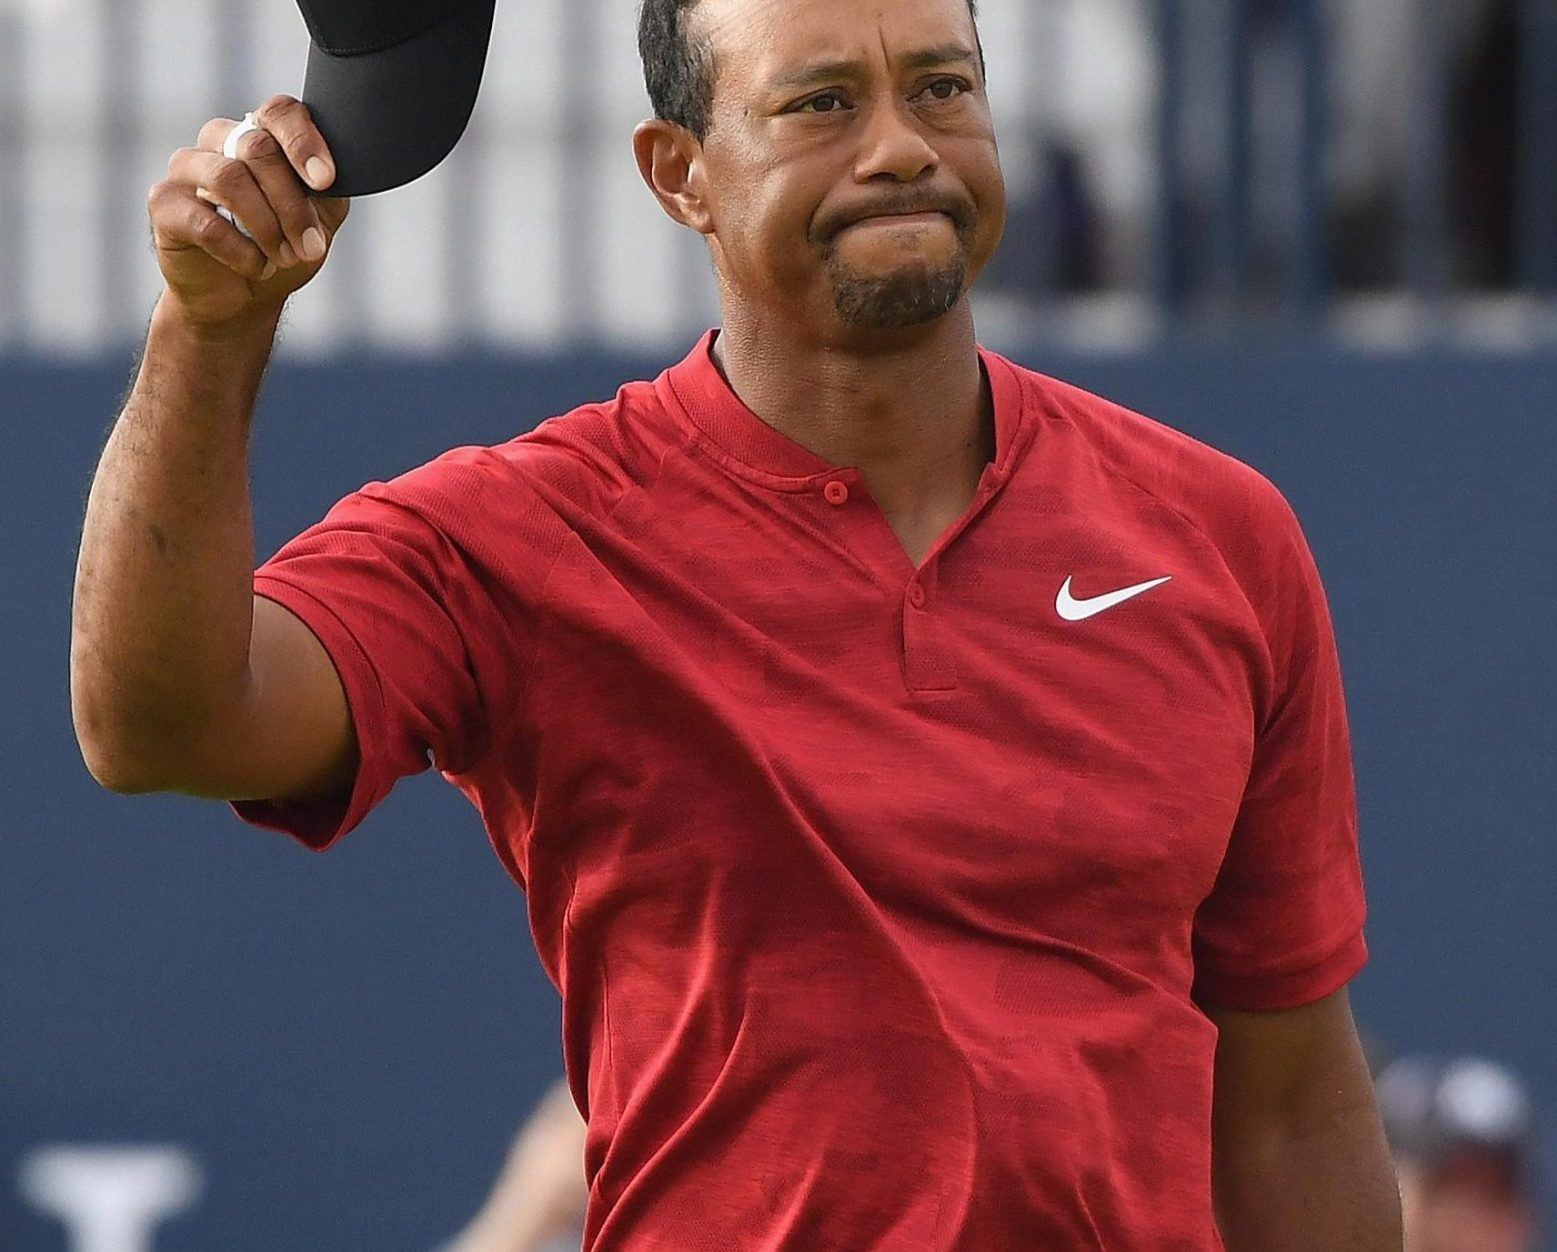 Tiger Woods roared into contention on the final day with some of his best golf for a long time and for a while was the best player out there, says Francesco Molinari